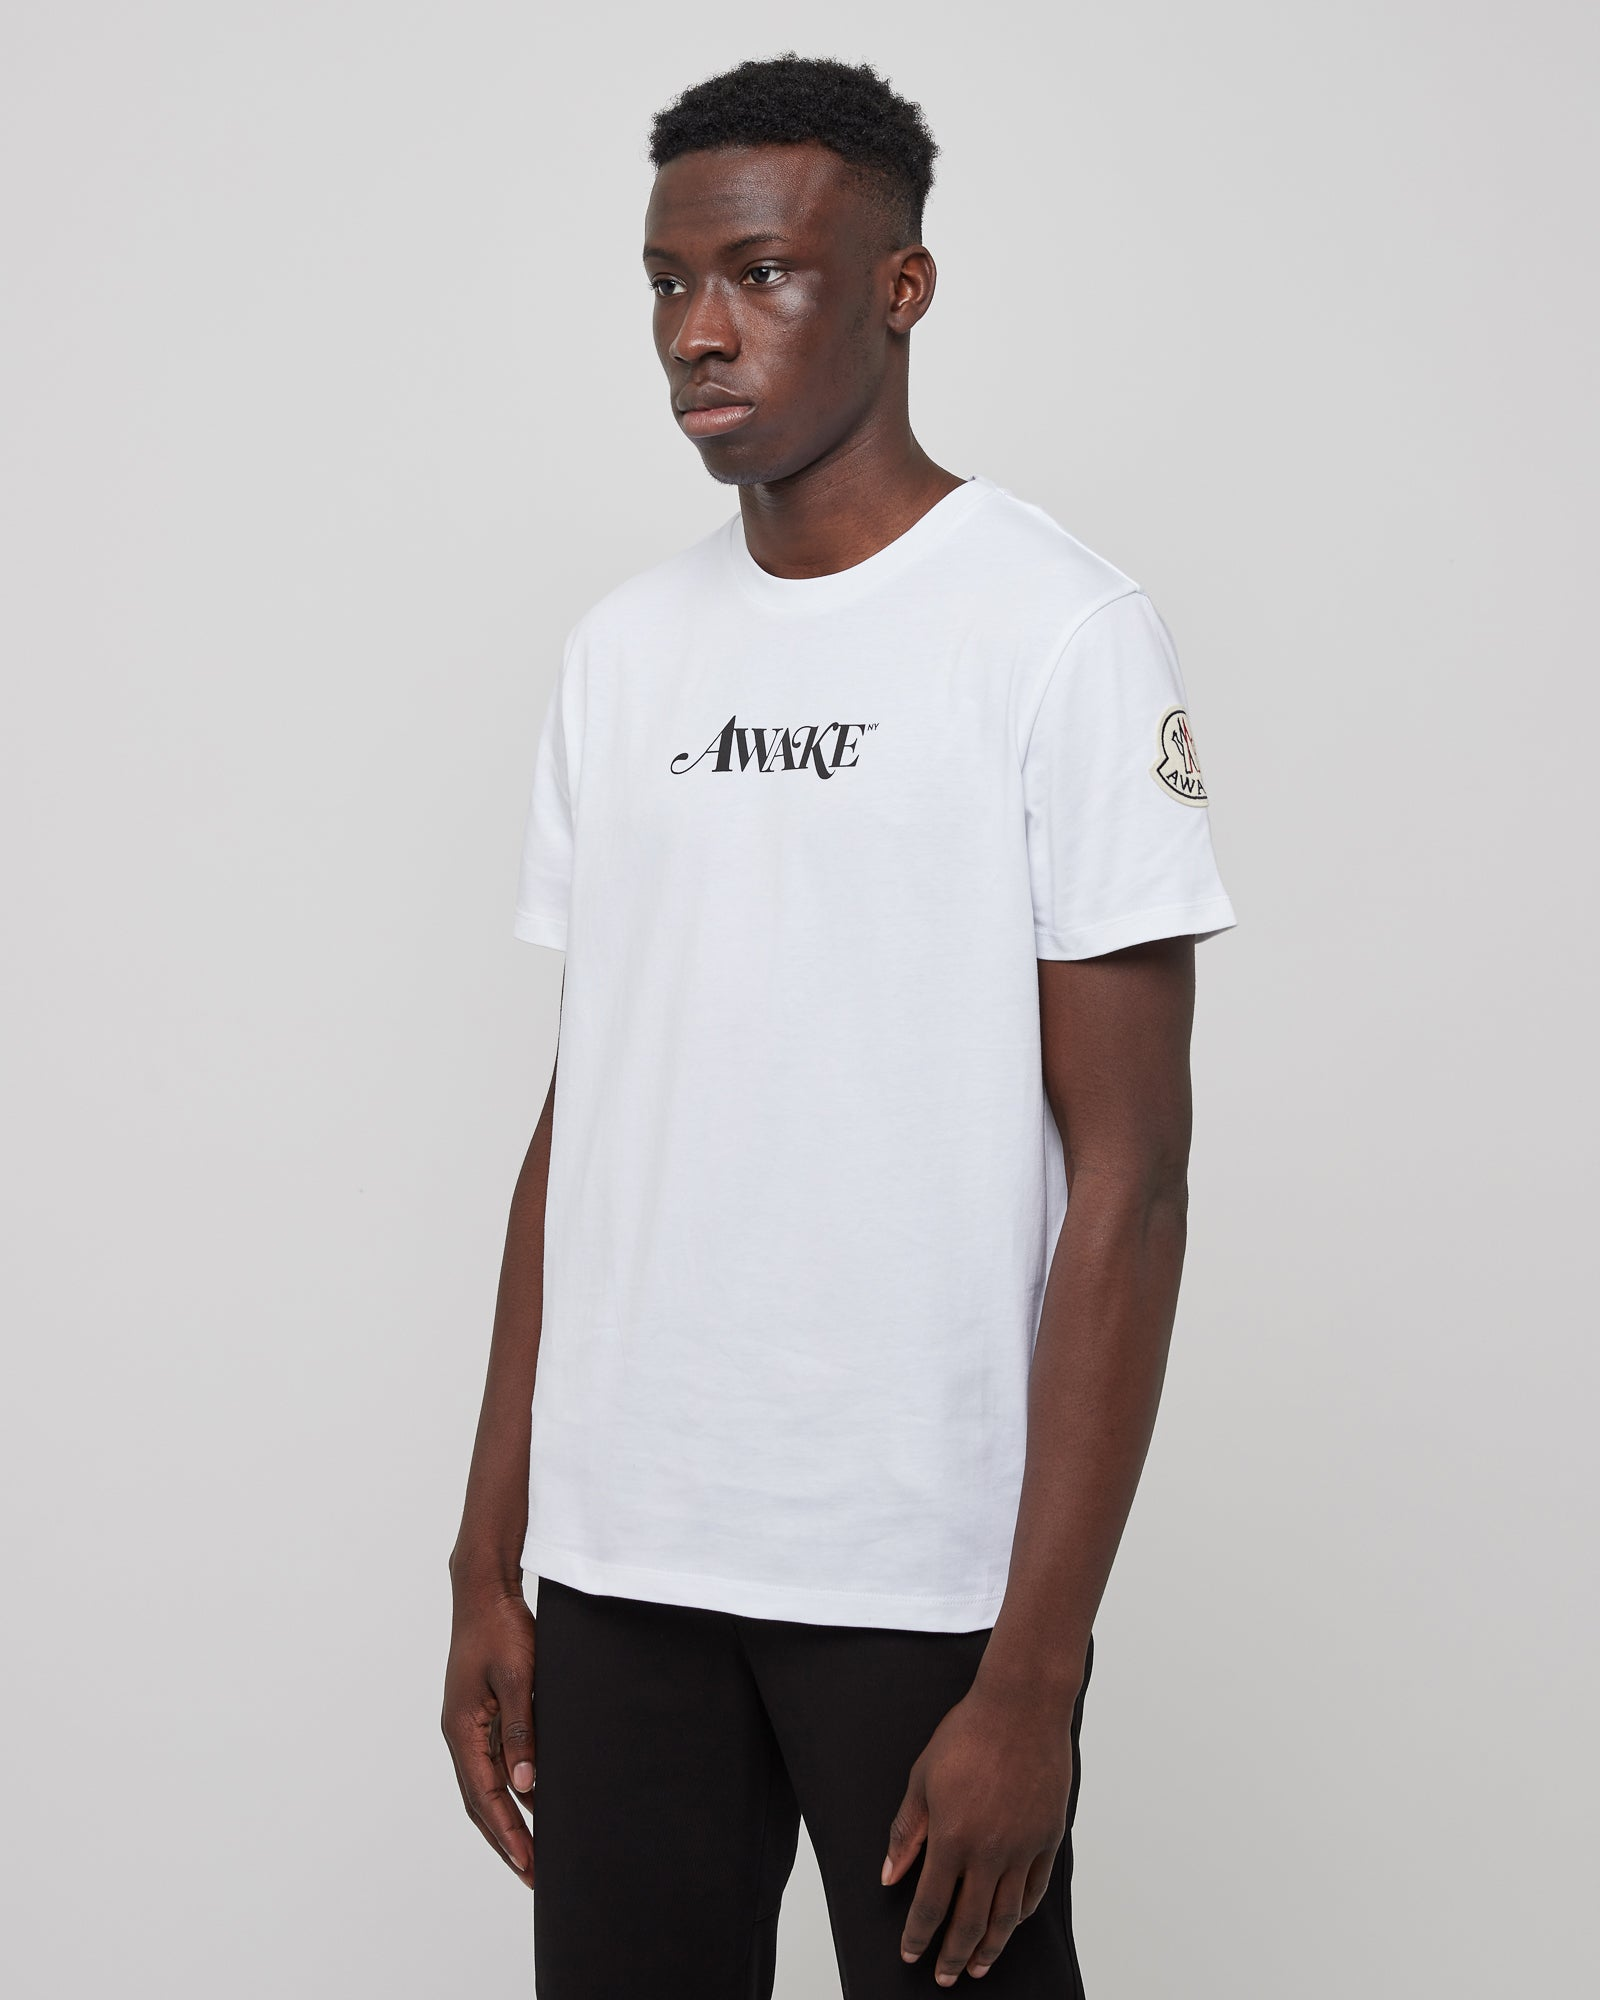 Awake T-Shirt in White